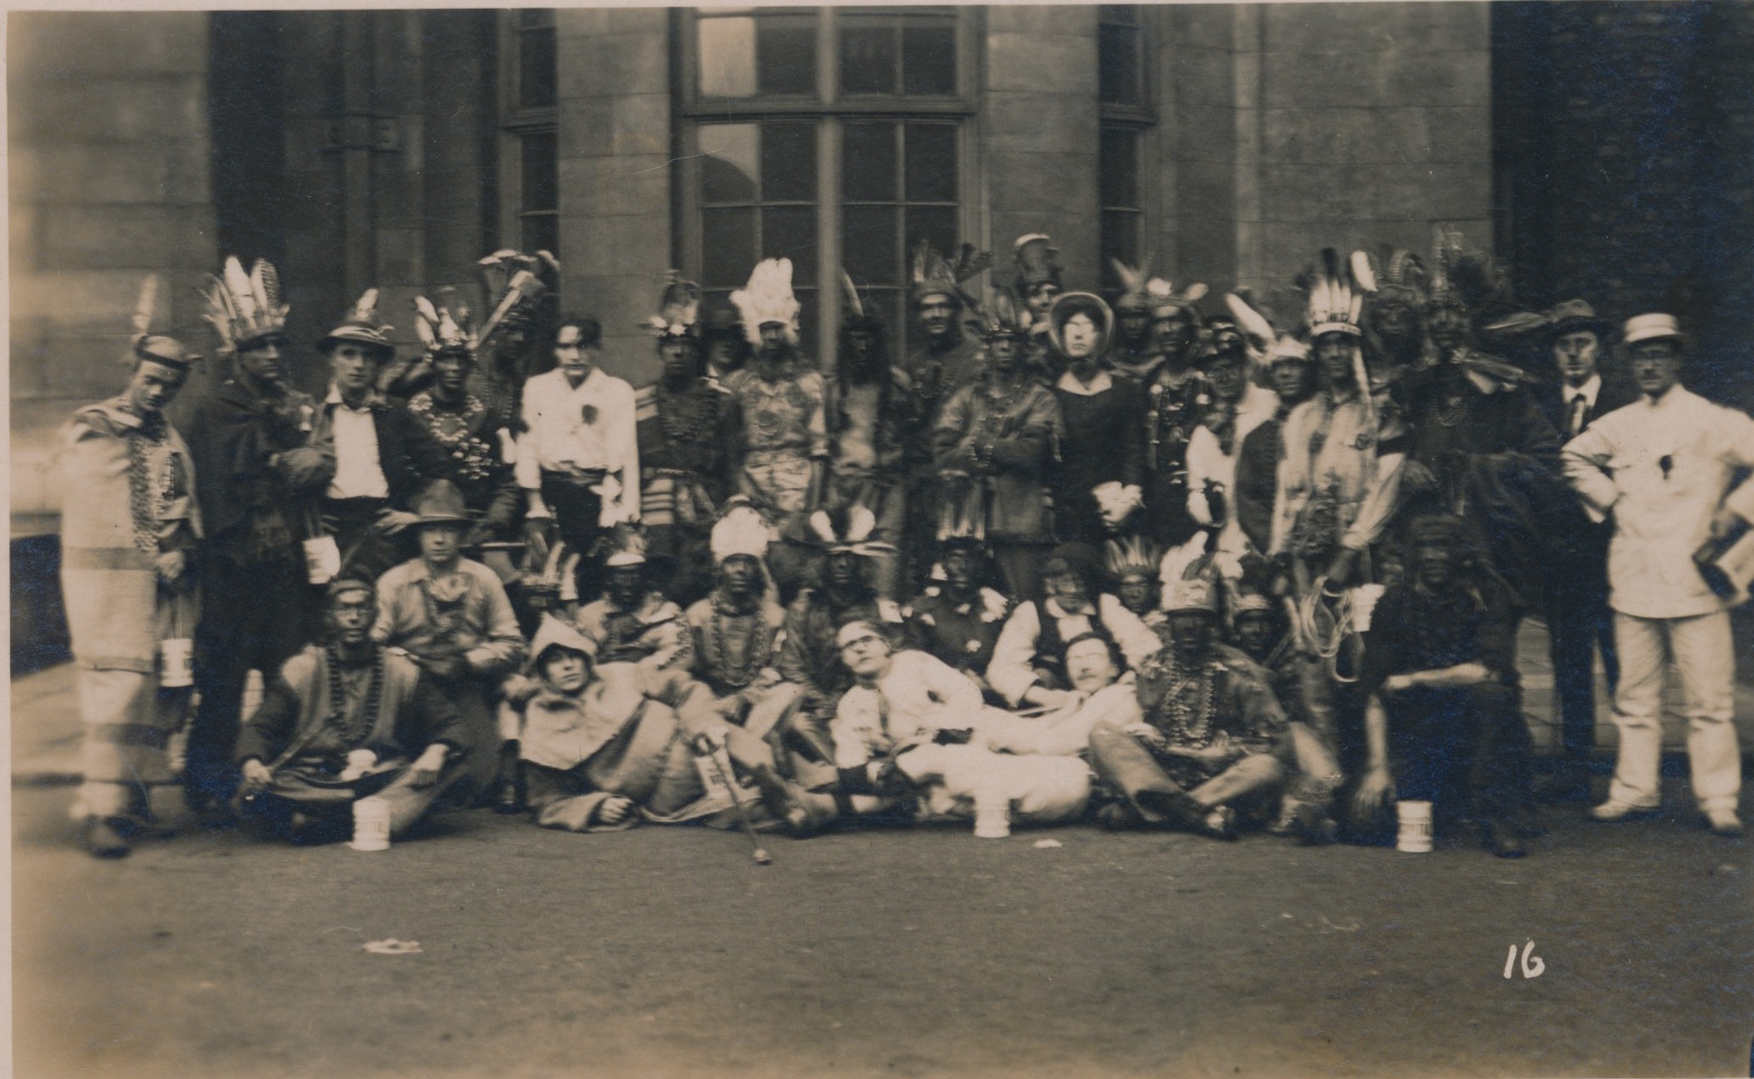 Costume Party, England c.1900's